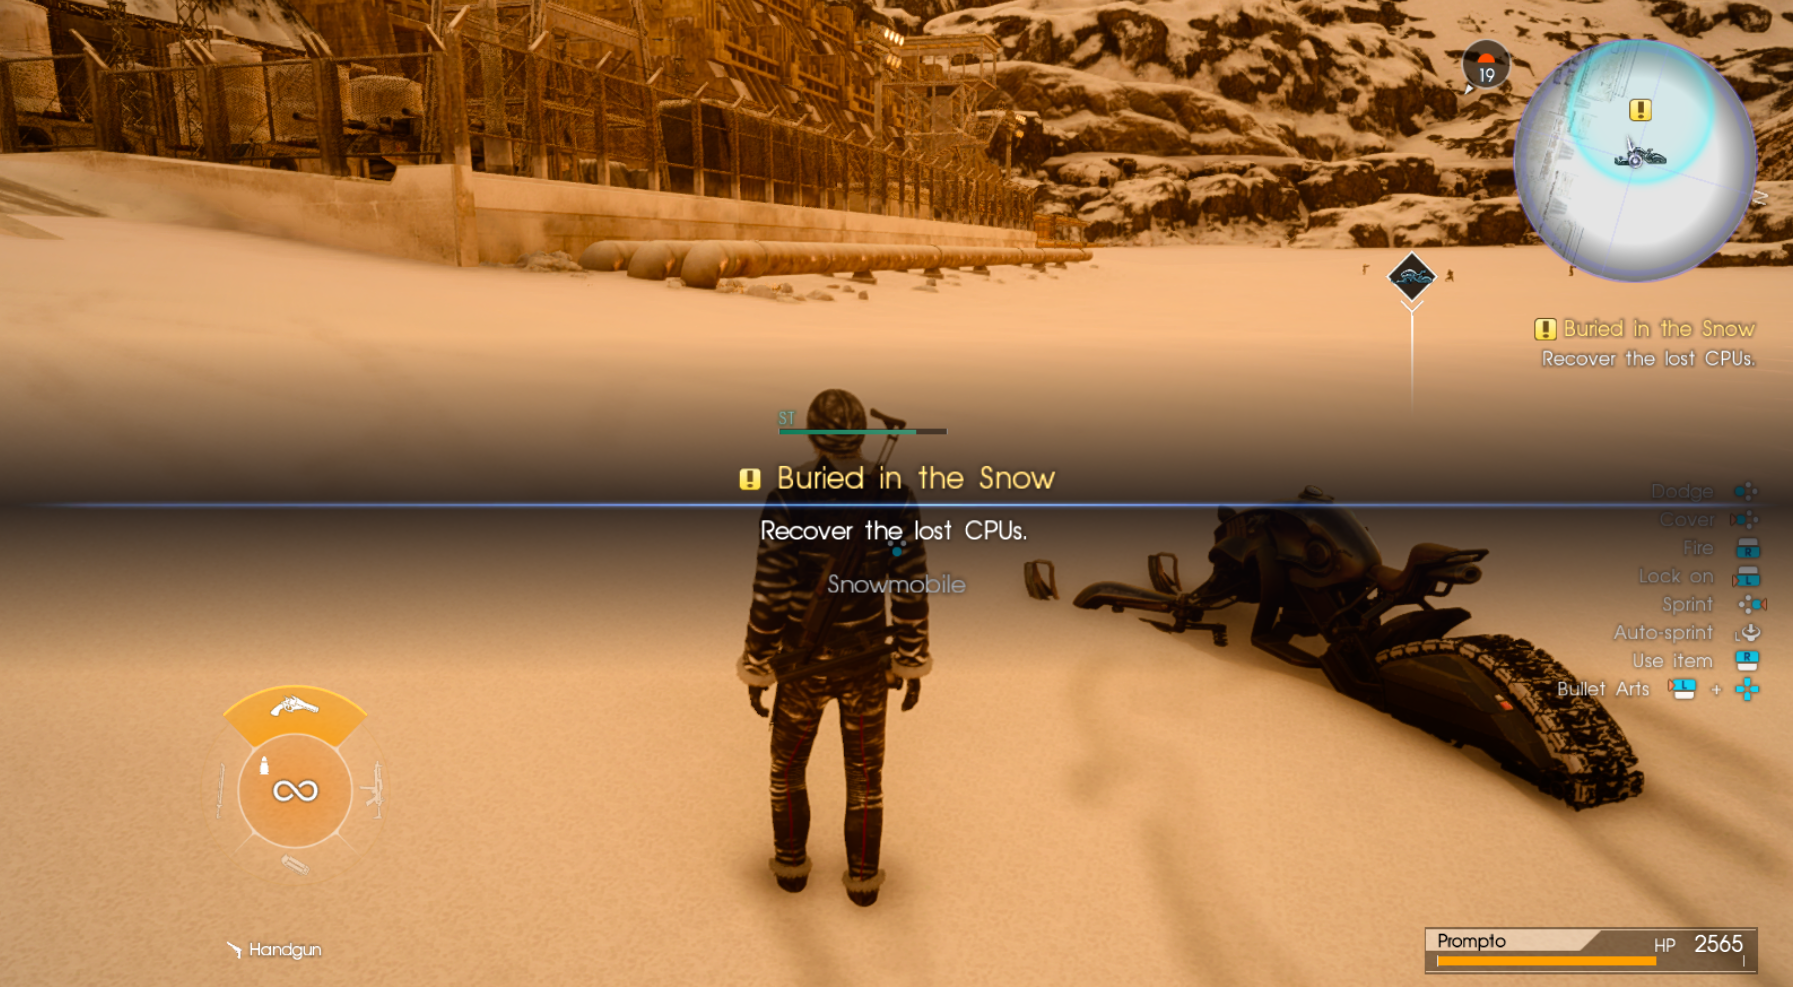 Buried in the snow quest start